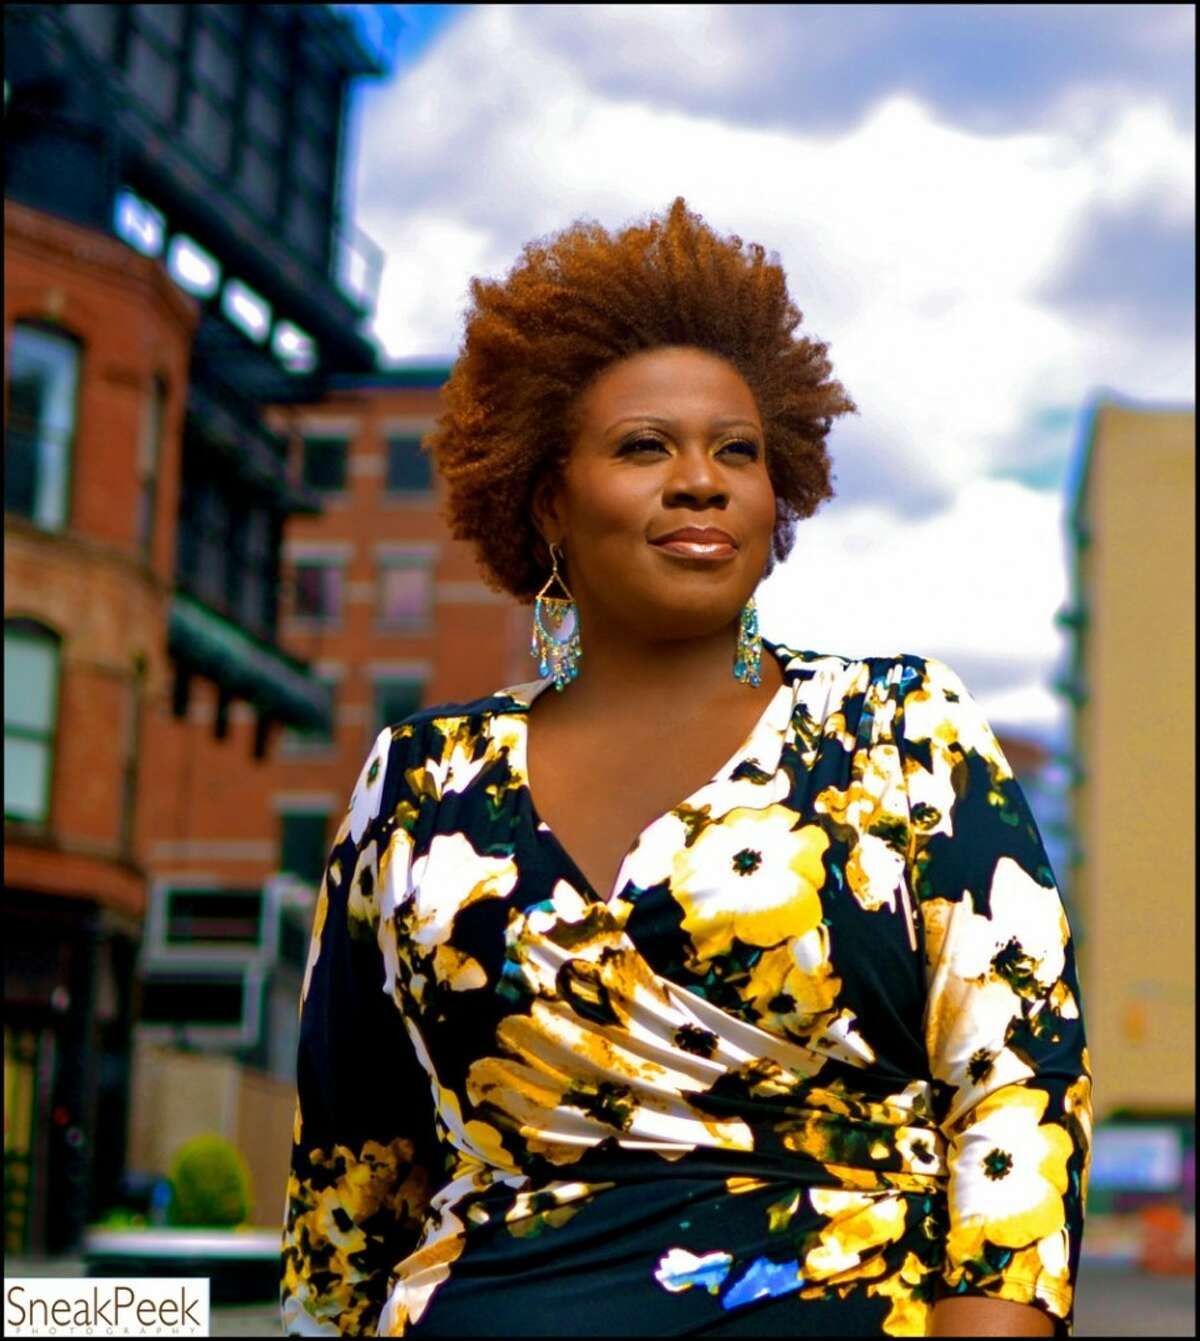 """The San Antonio Symphony's first pops concert of 2017 is billed as """"from gospel to soul to Broadway,"""" which sounds like the ultimate long and winding road. But it's a musical journey that Broadway star and soprano Capathia Jenkins (pictured) will travel in a pair of weekend concerts with the aid of the MLK Mass Choir. The concerts will feature classic Broadway tunes mixed with gospel and R&B. Akiko Fujimoto will conduct.8 p.m. Friday and Saturday, Tobin Center for the Performing Arts, 100 Auditorium Circle. $15-$100, box office, 210-223-8624, tobi.tobincenter.org -- Robert Johnson"""